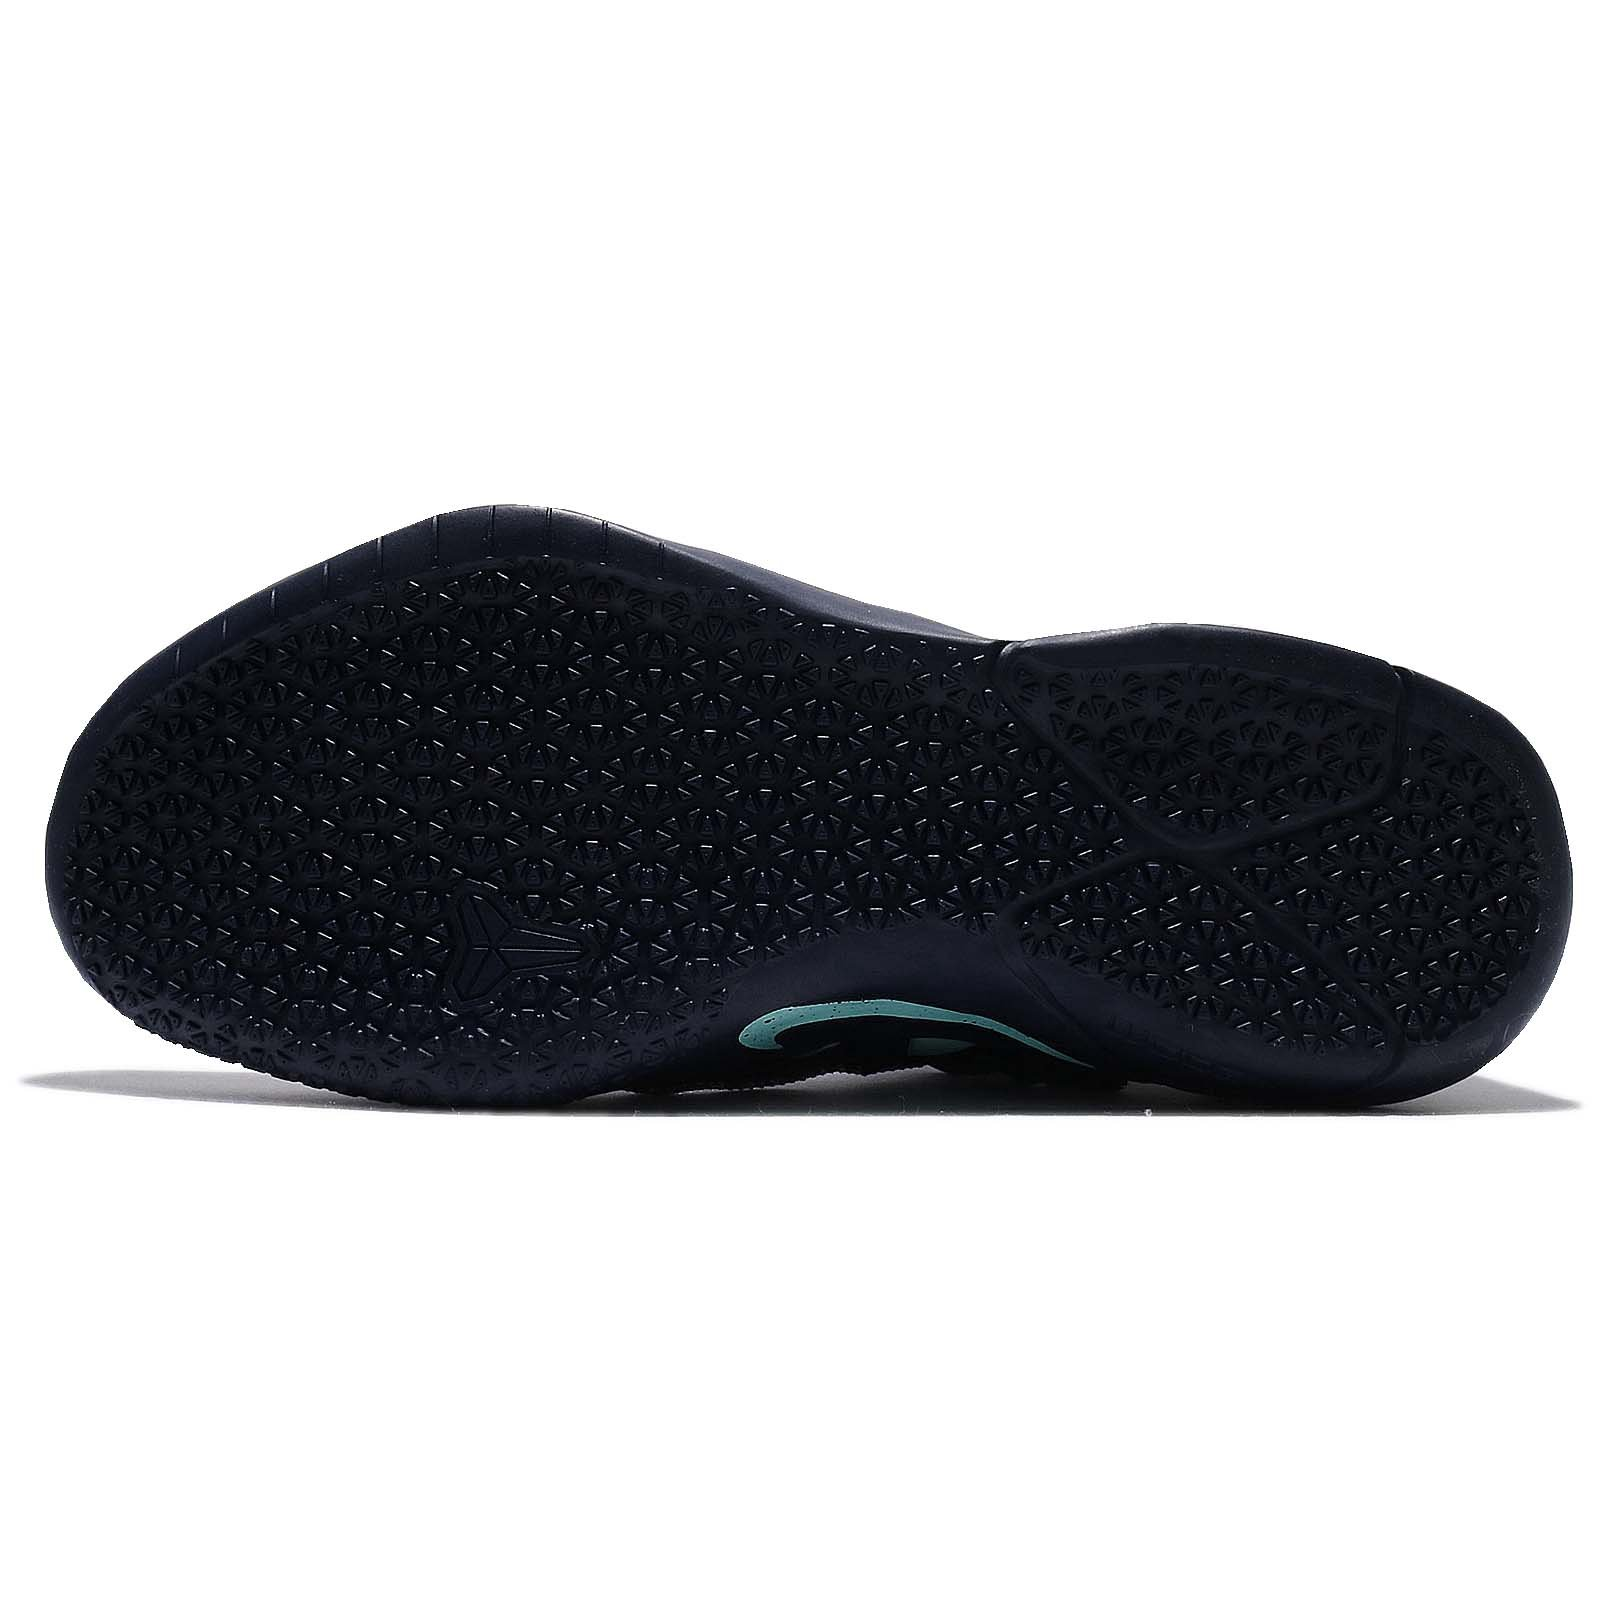 Nike Men's Kobe A.D. NXT AD, Mambacurial FC Barcelona College Navy Igloo, 9.5 M US by NIKE (Image #4)